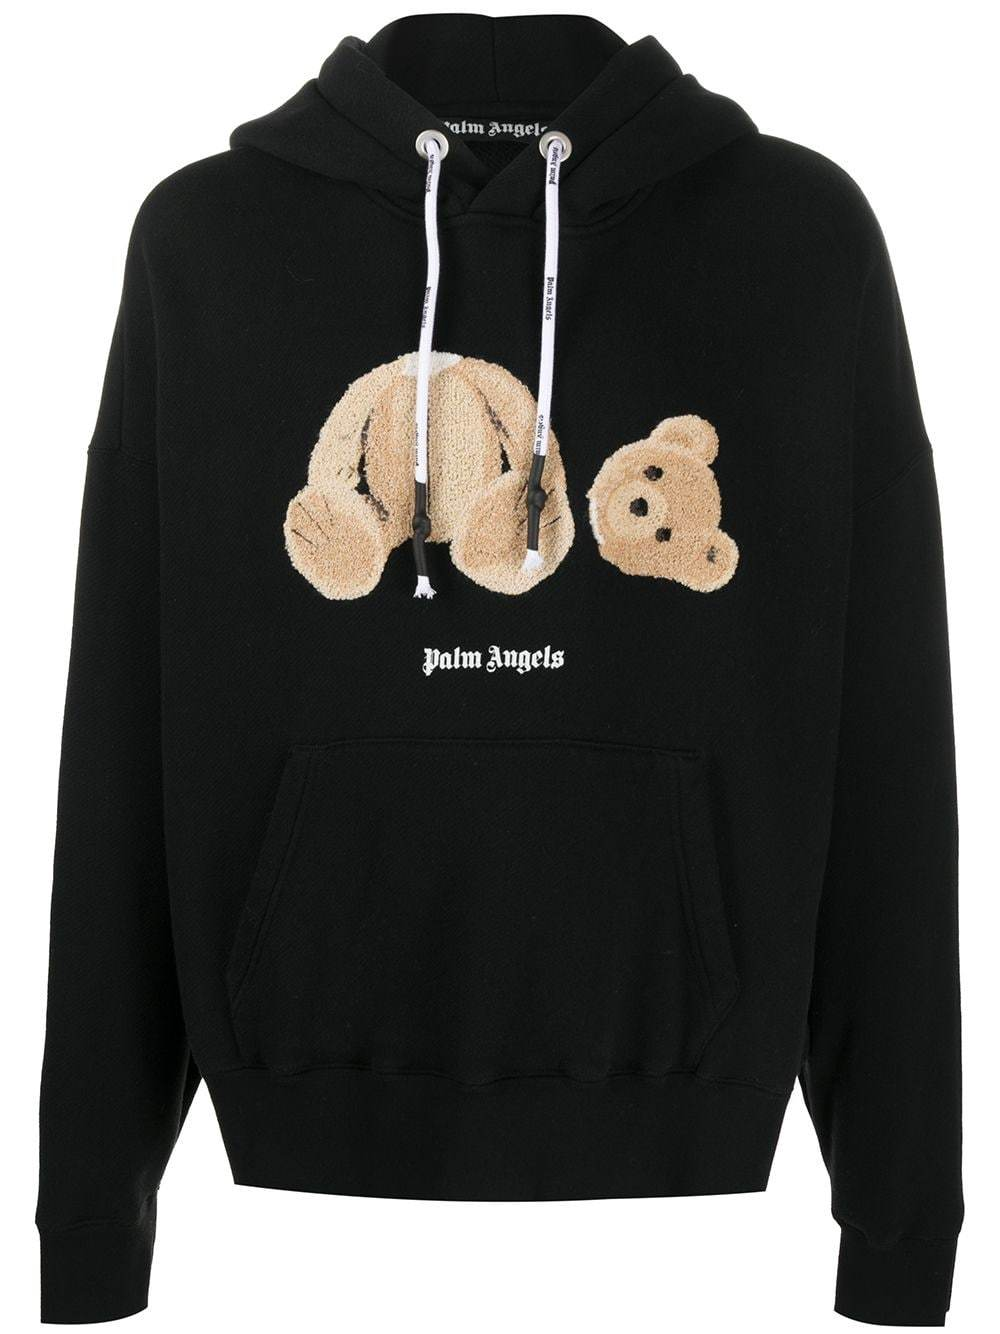 PALM ANGELS Bear Hoodie Black - Maison De Fashion